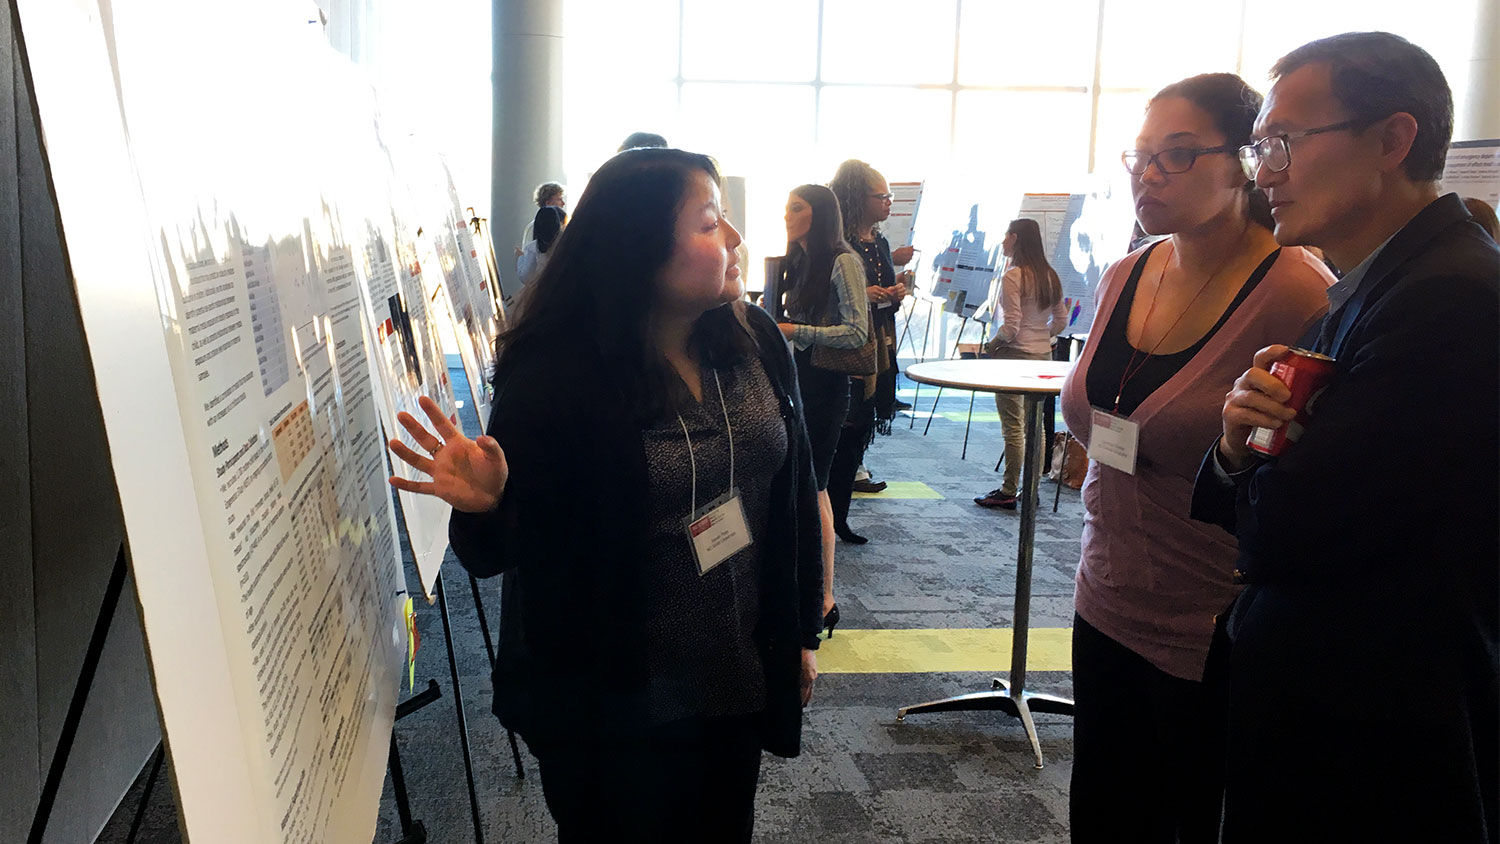 Symposium Highlights NC State Research On Toxic Metals